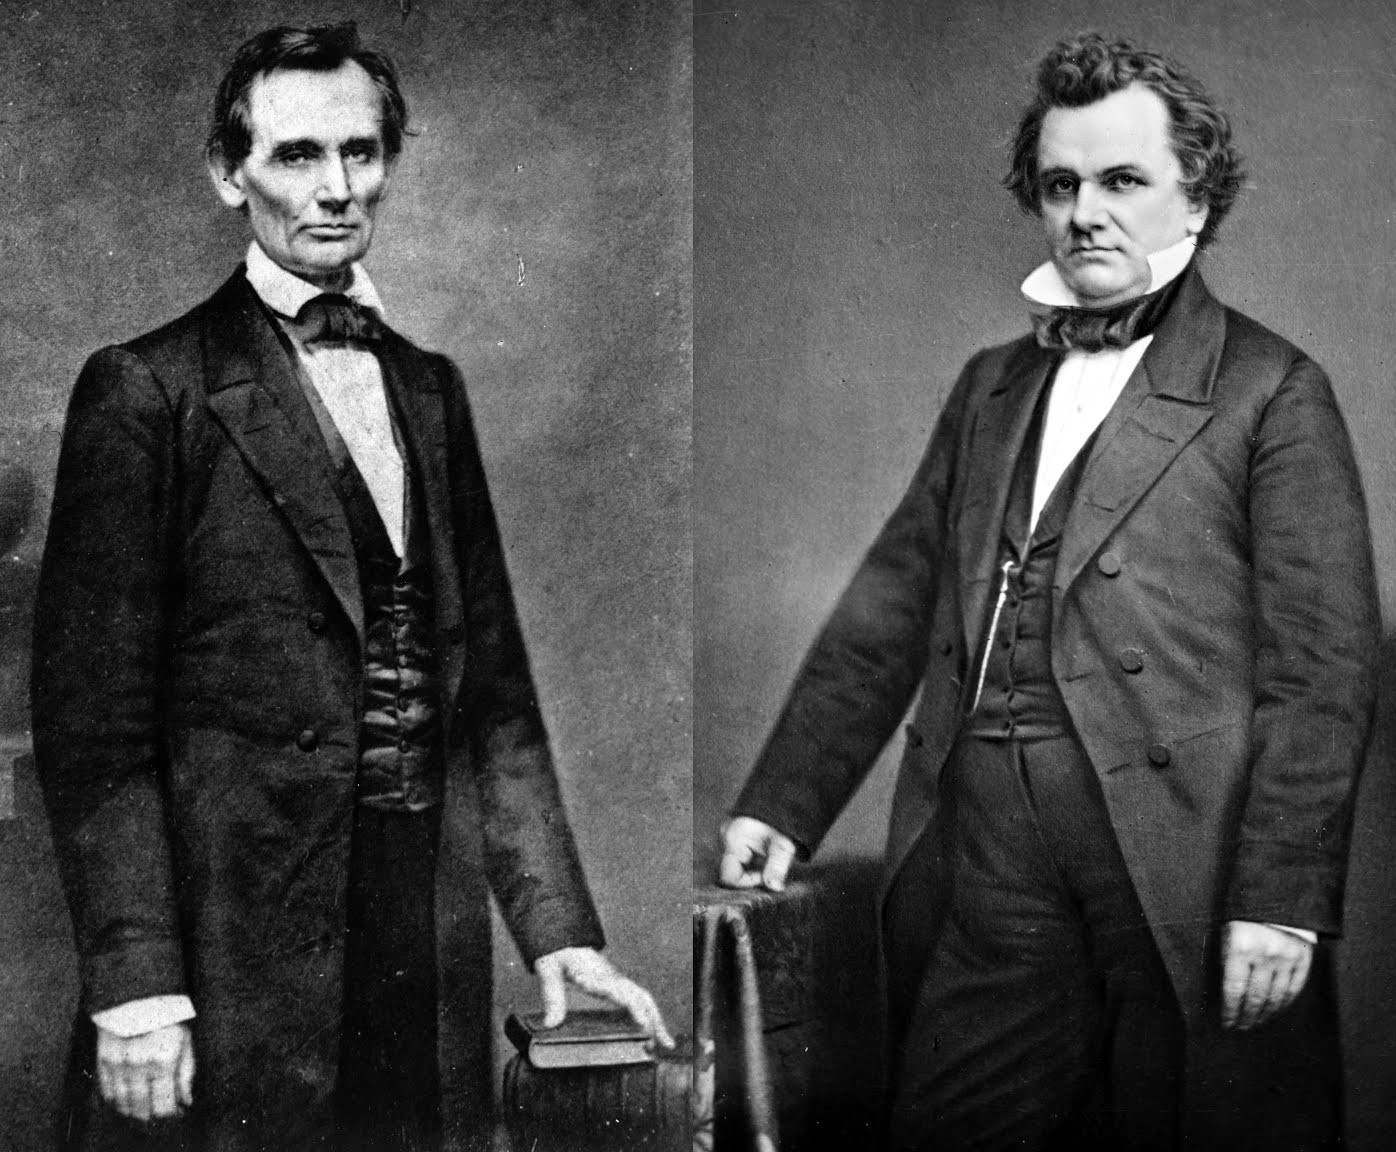 Abraham Lincoln and Stephen A. Douglas